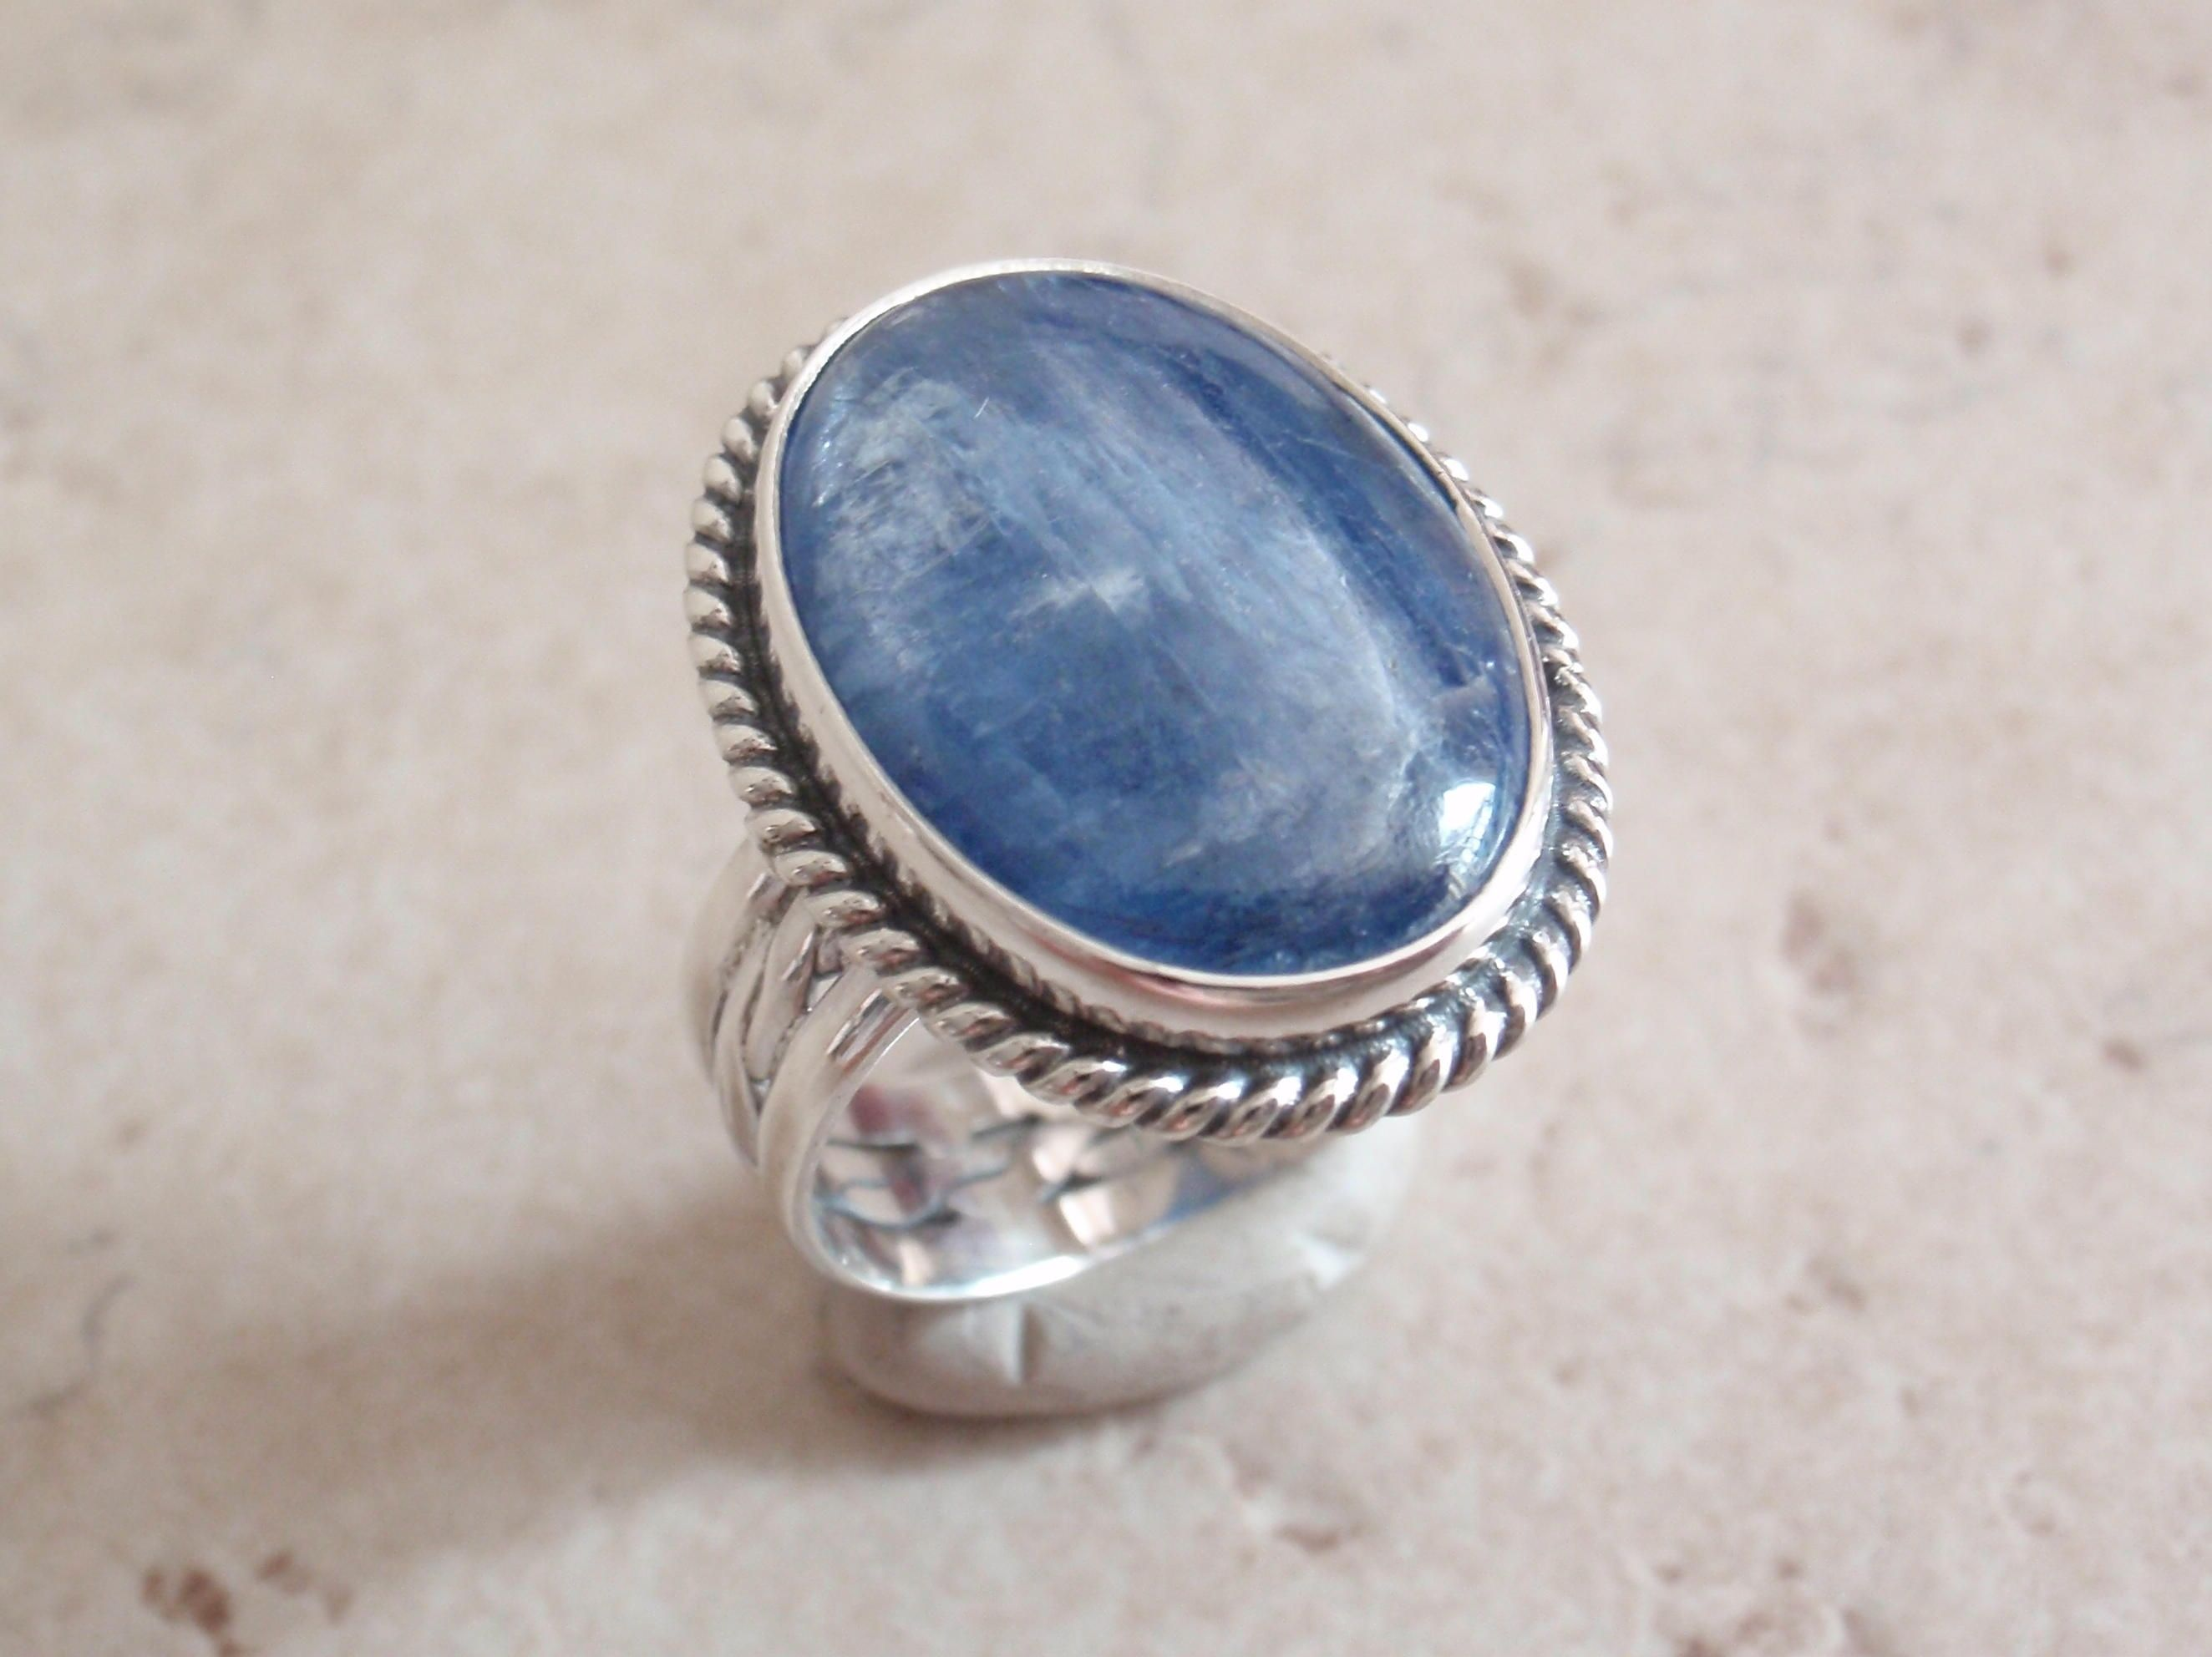 ring watches shipping overstock valitutti free product jewelry michael slabradorite or labradorite menslabradorite men today kyanite silver rings palladium sapphire blue mens and